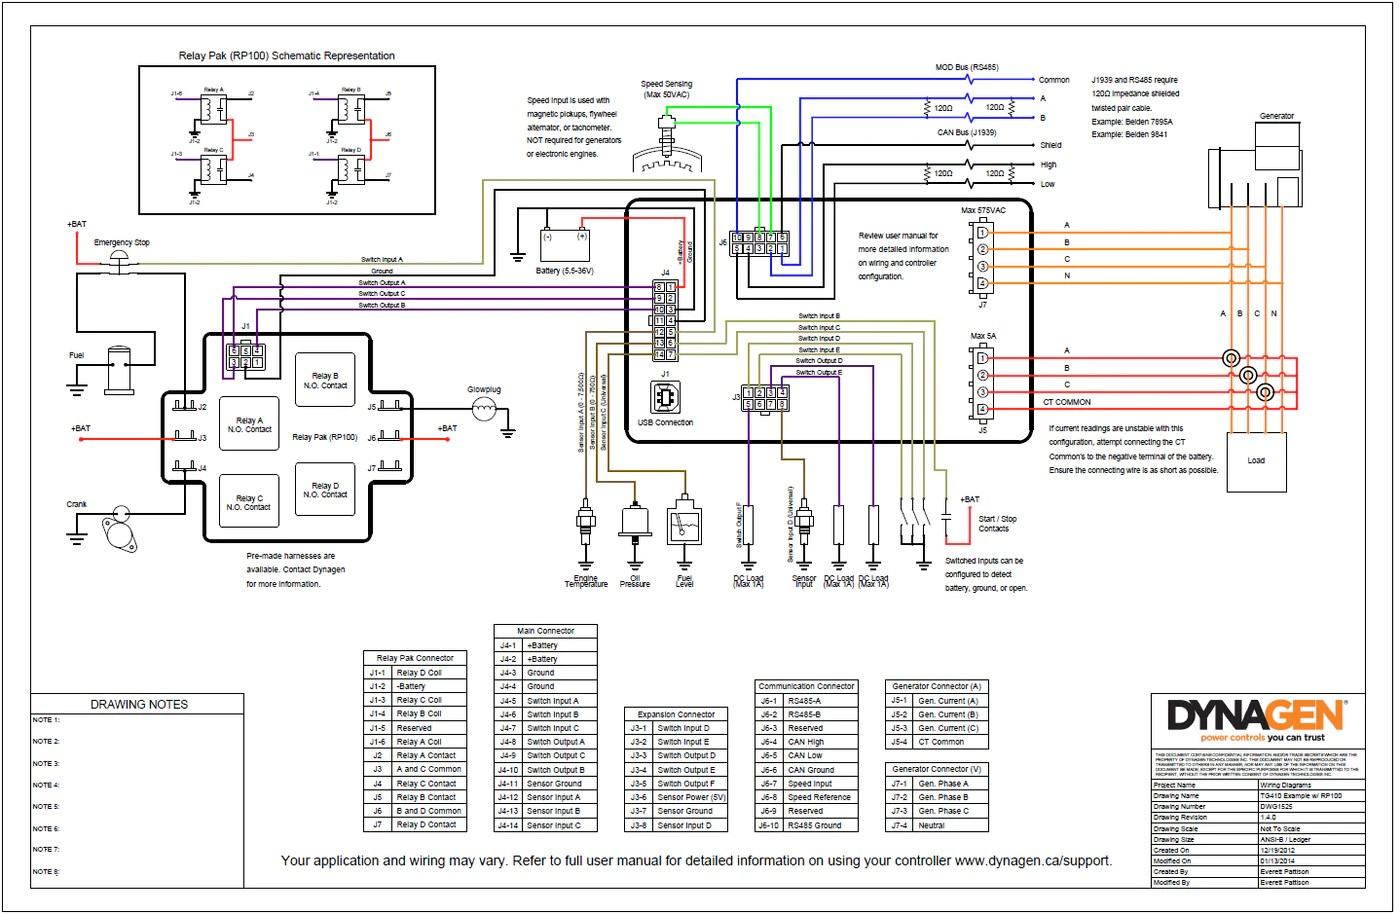 small resolution of  engine control panel typical wiring diagram